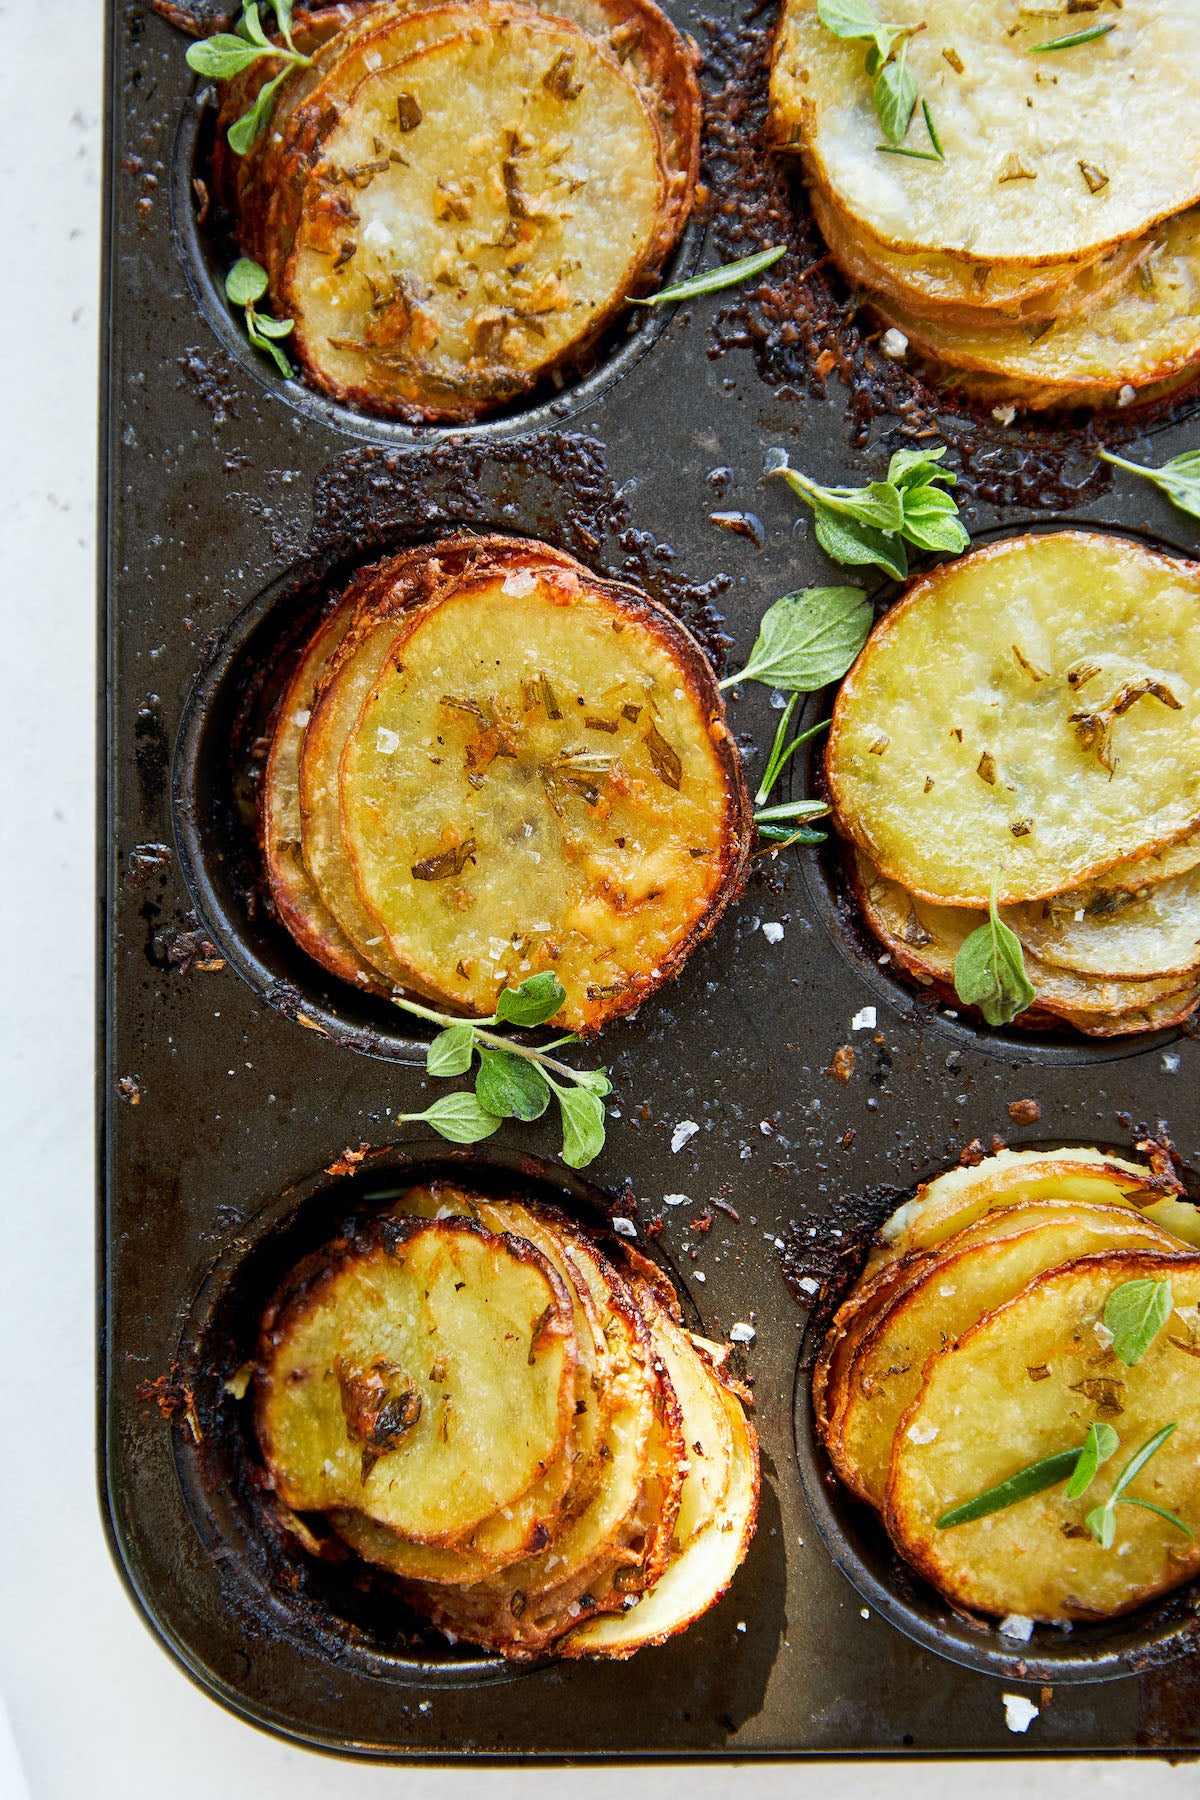 Crispy Cheesy Layered Potatoes made with Herbs and Avocado Oil